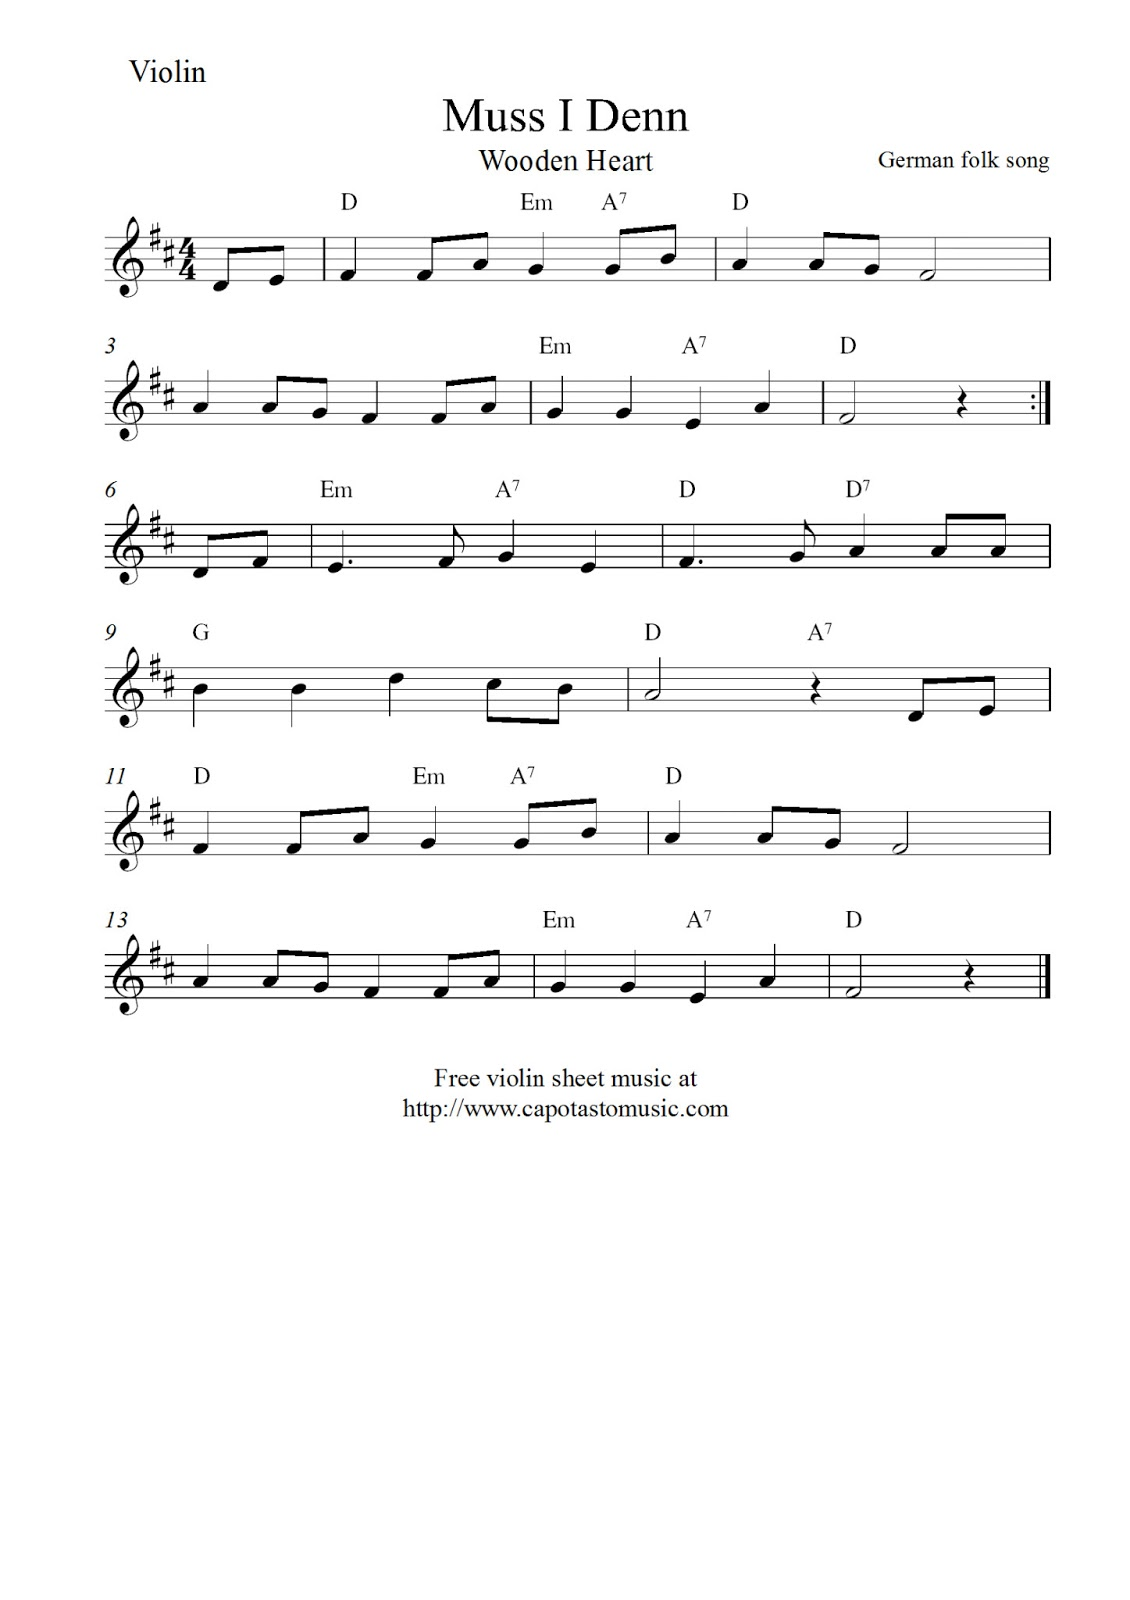 Free Printable Violin Sheet Music Muss I Denn Wooden Heart